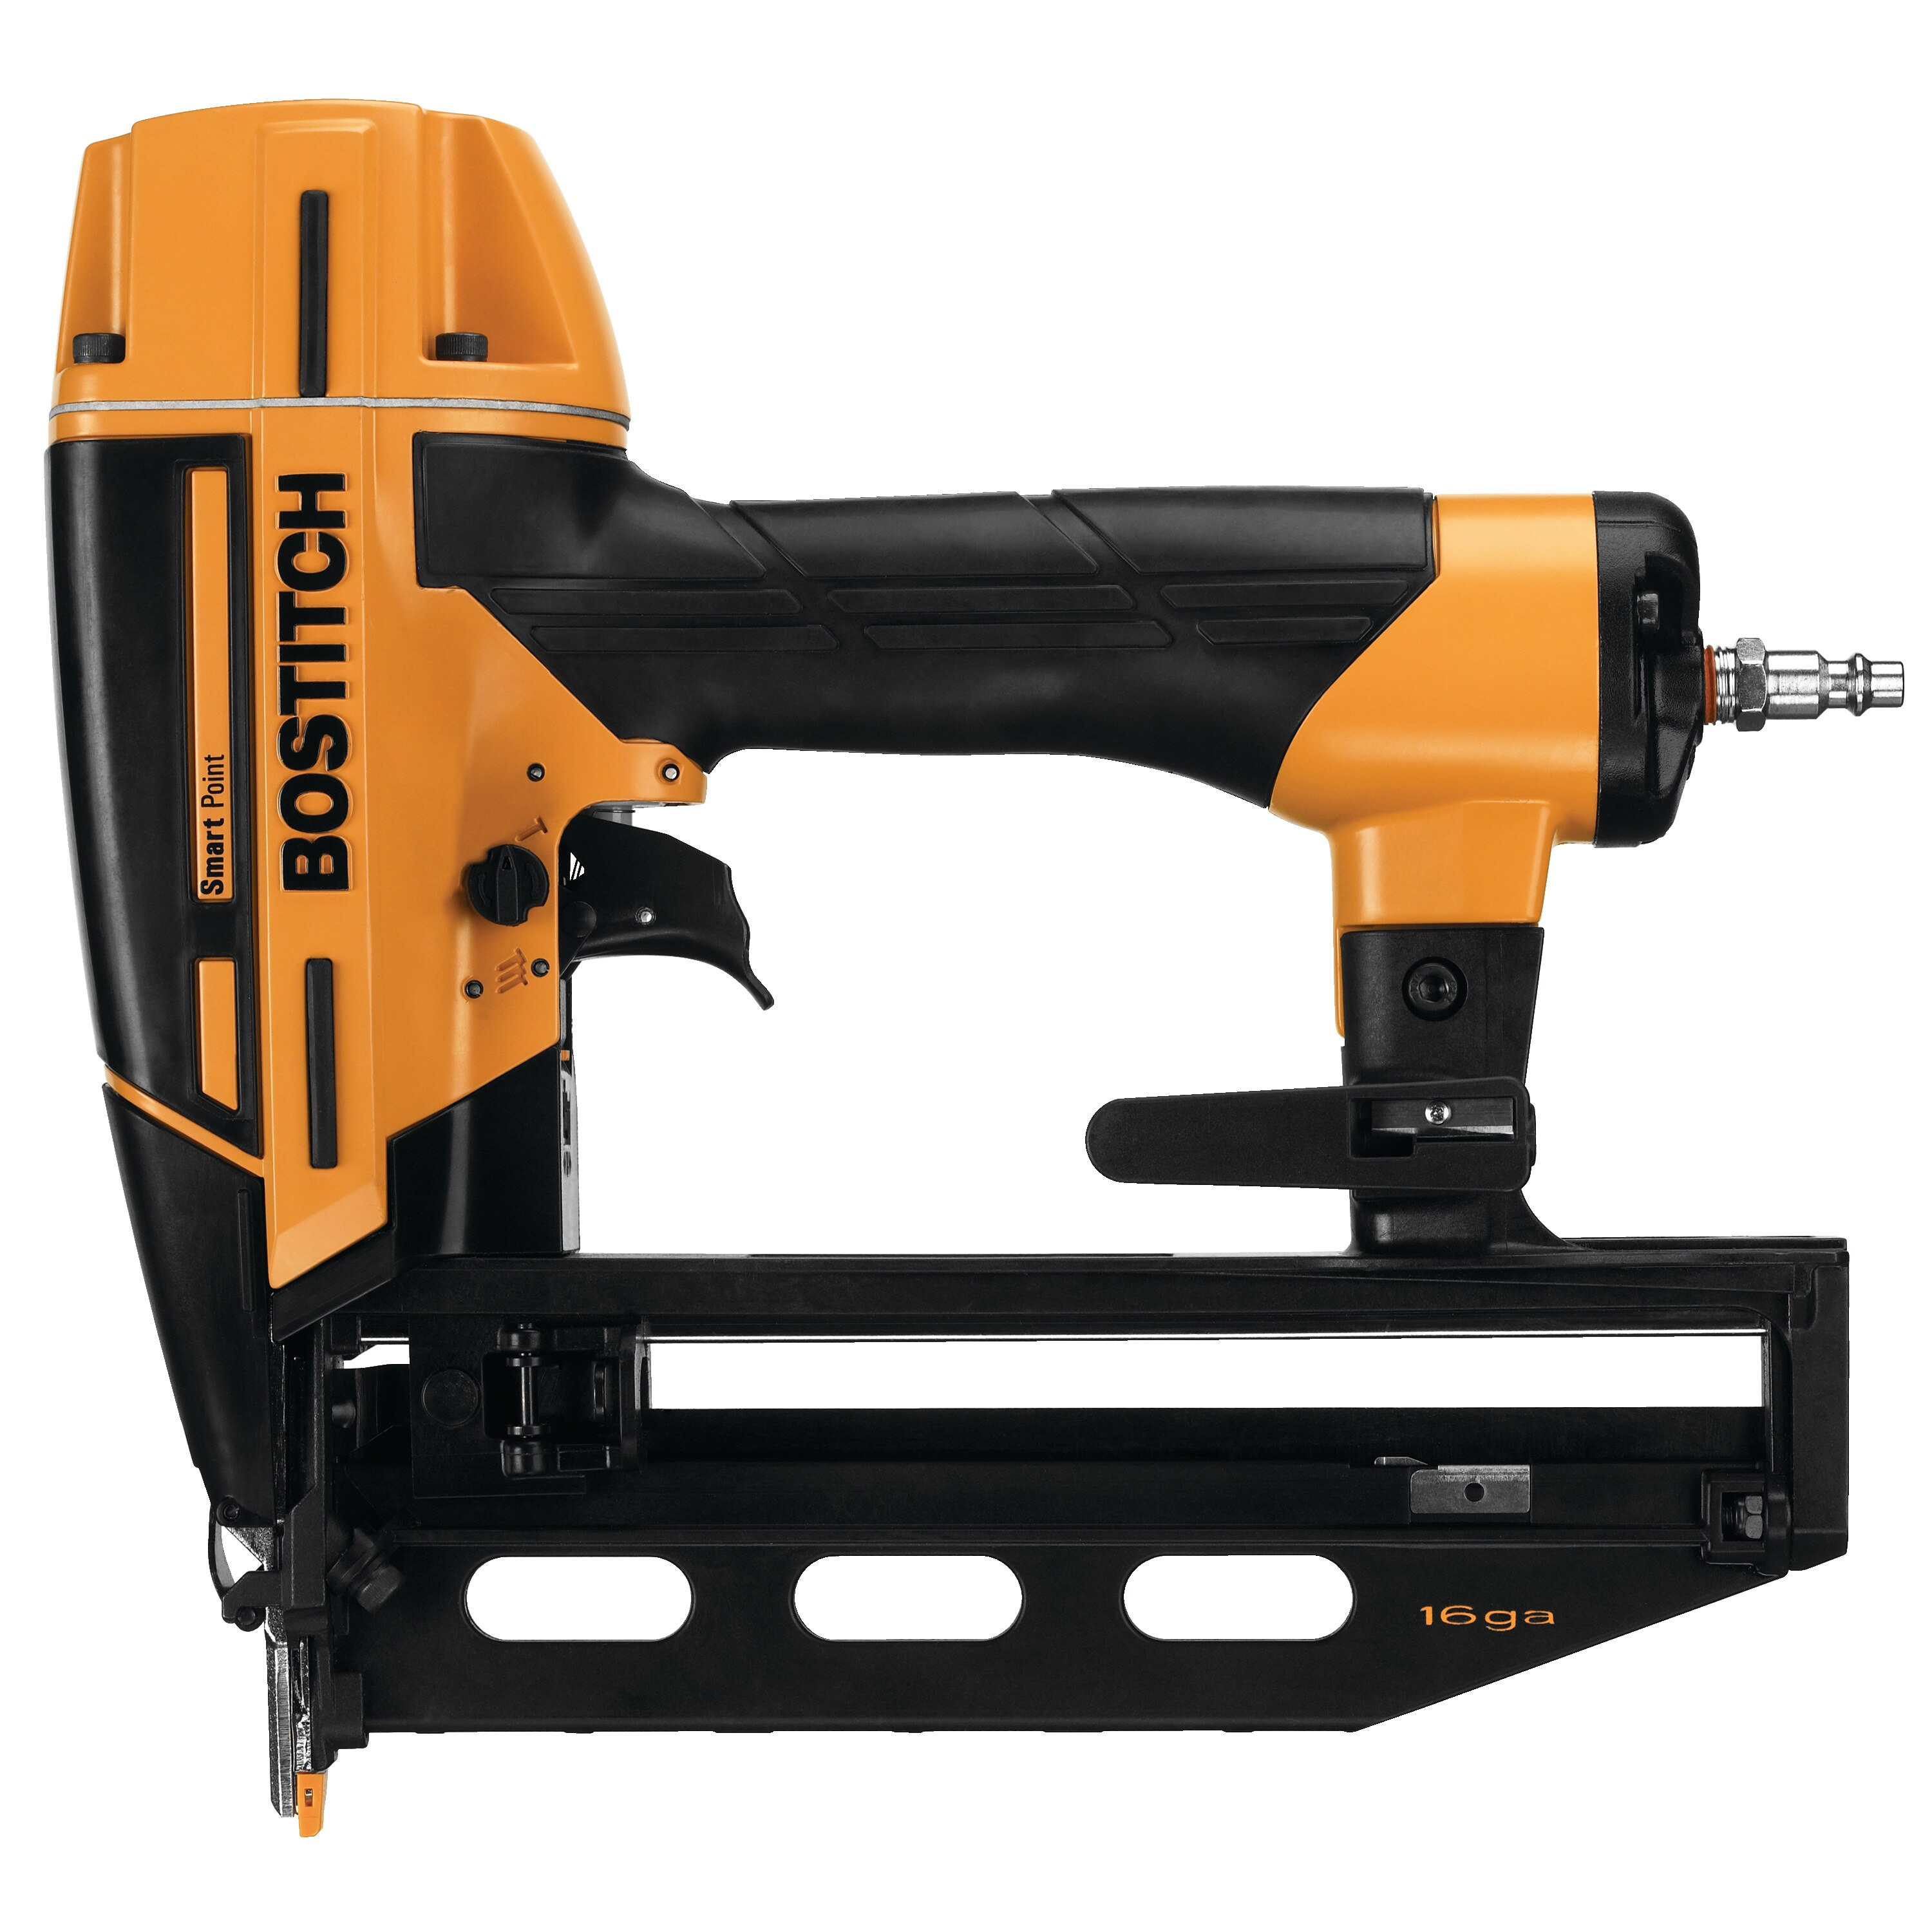 Bostitch - Smart Point 16 GA Finish Nailer Kit - BTFP71917